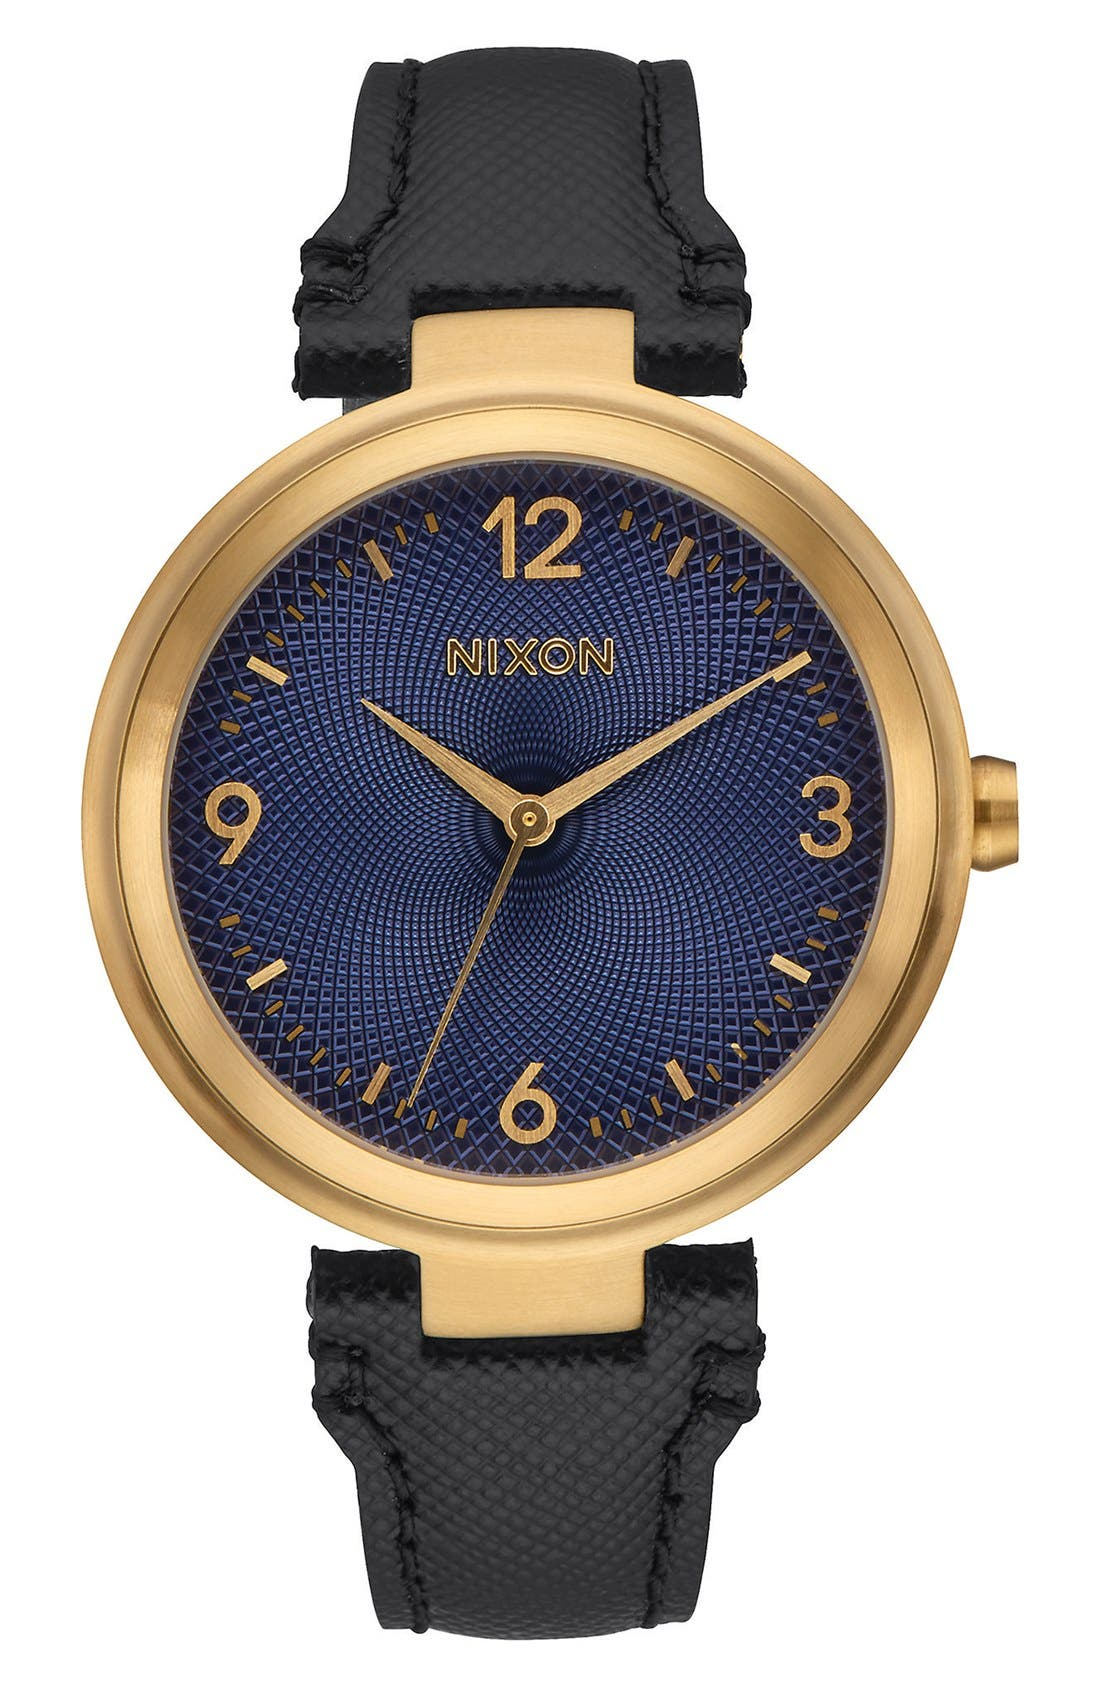 NIXON Chameleon Leather Strap Watch, 39mm